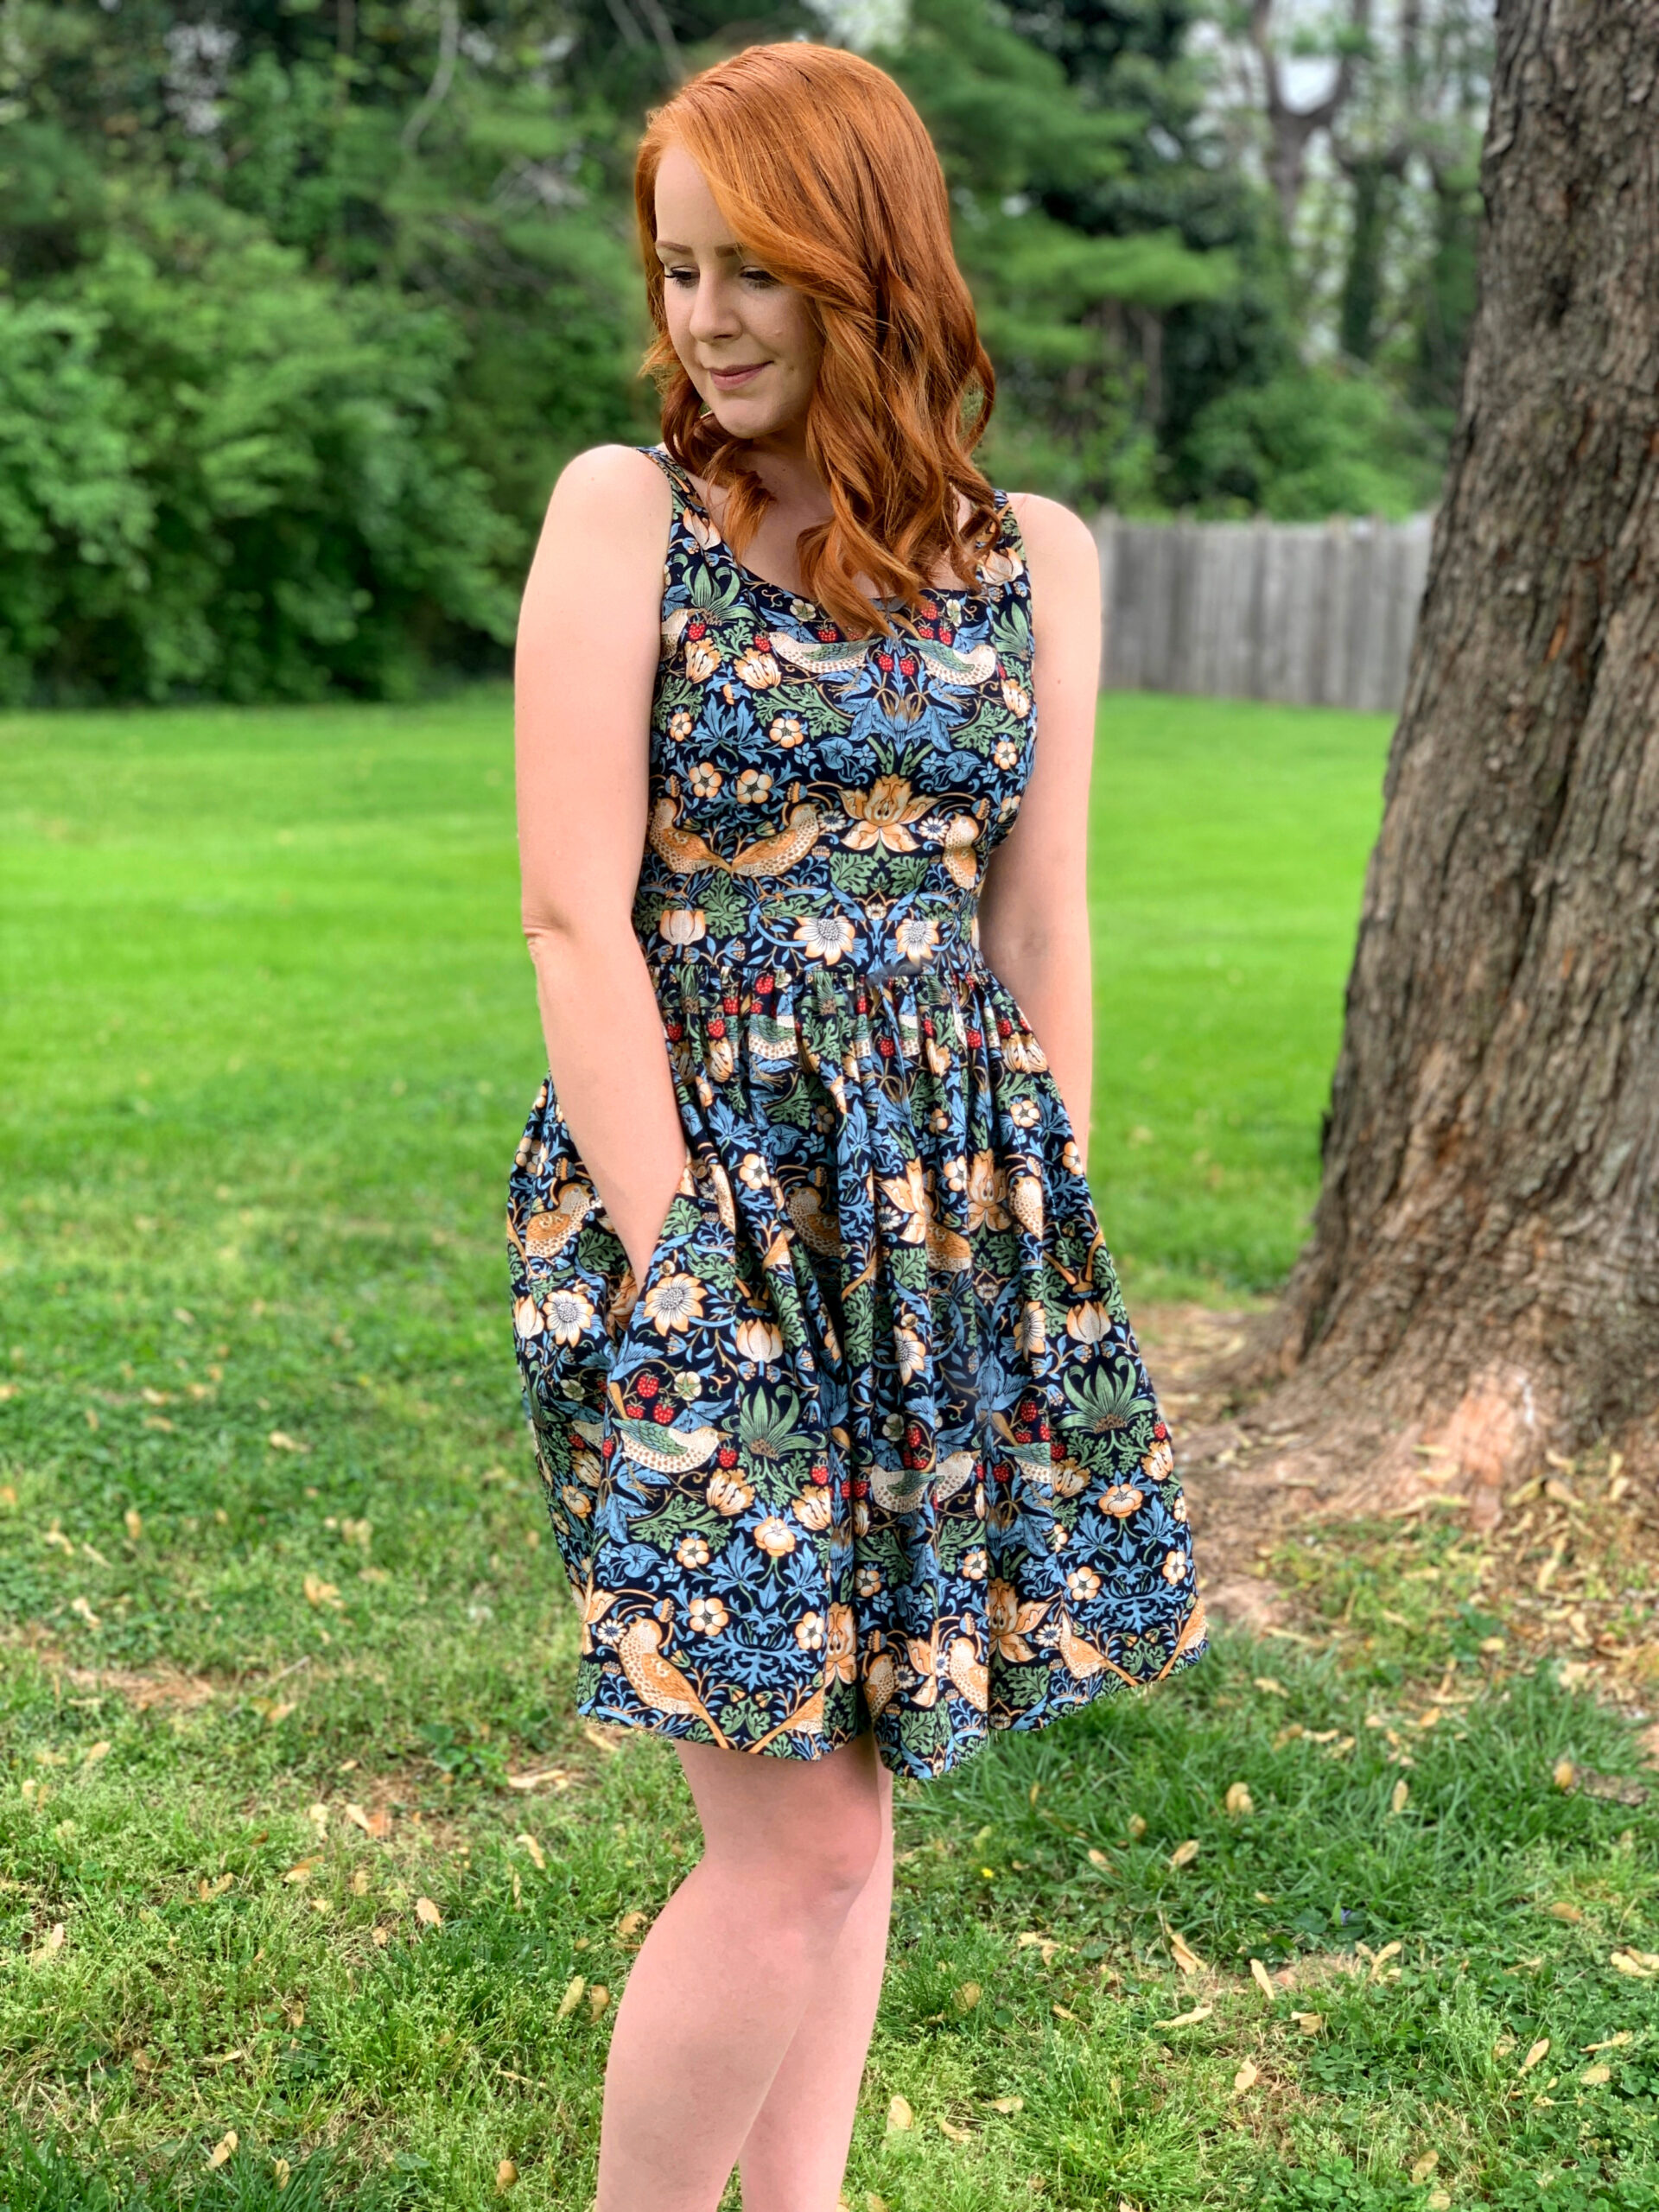 William Morris Strawberry Thief dress by Olivia Jane Handcrafted